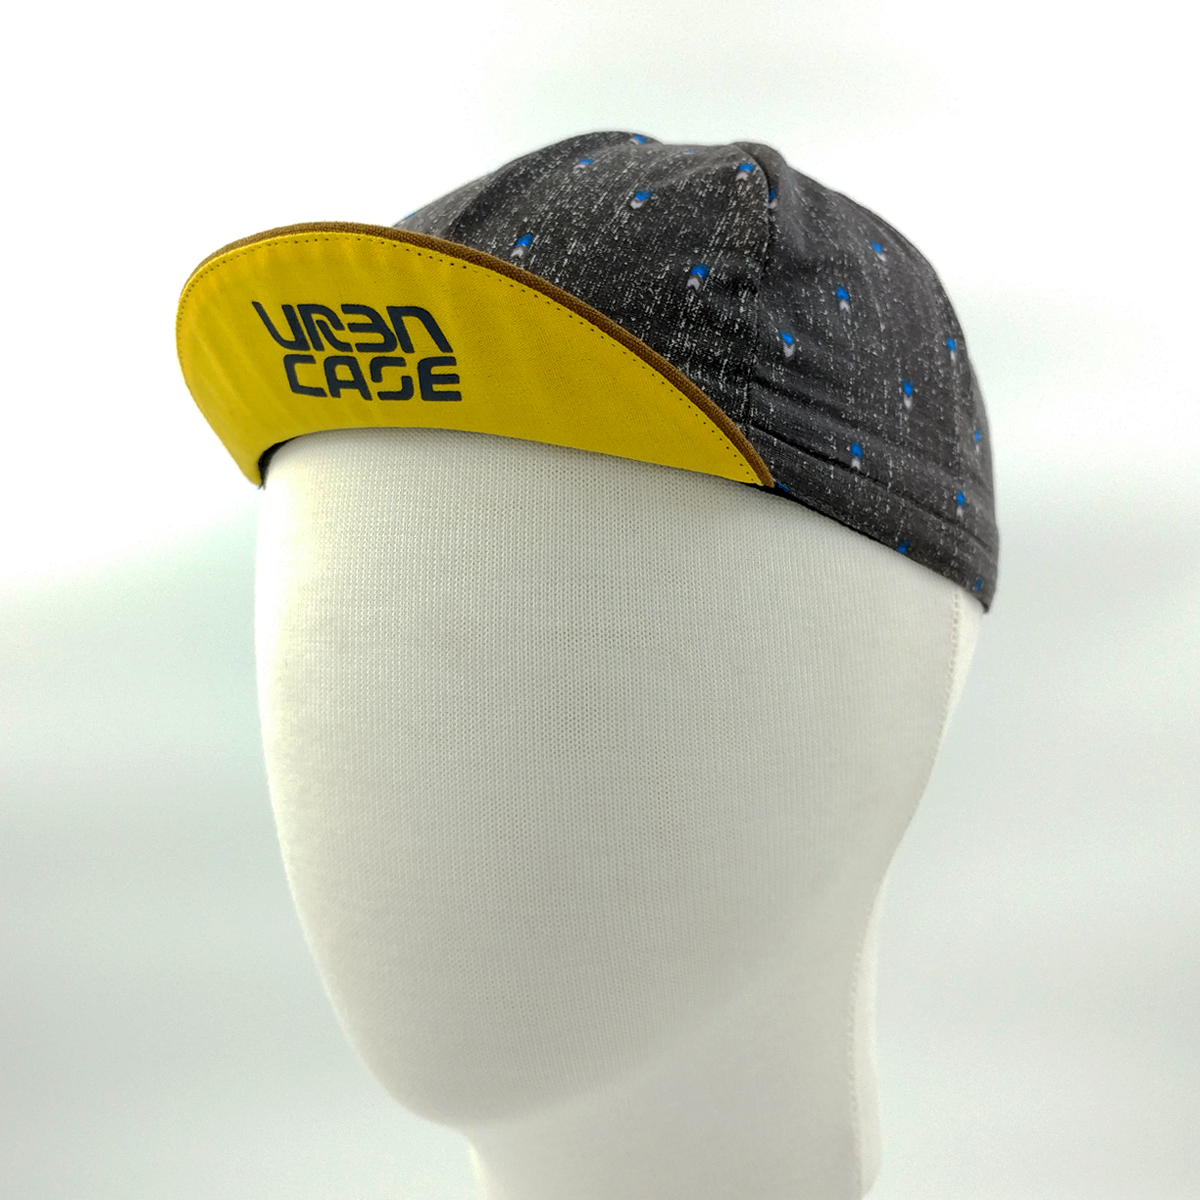 cycling cap - greyclue3